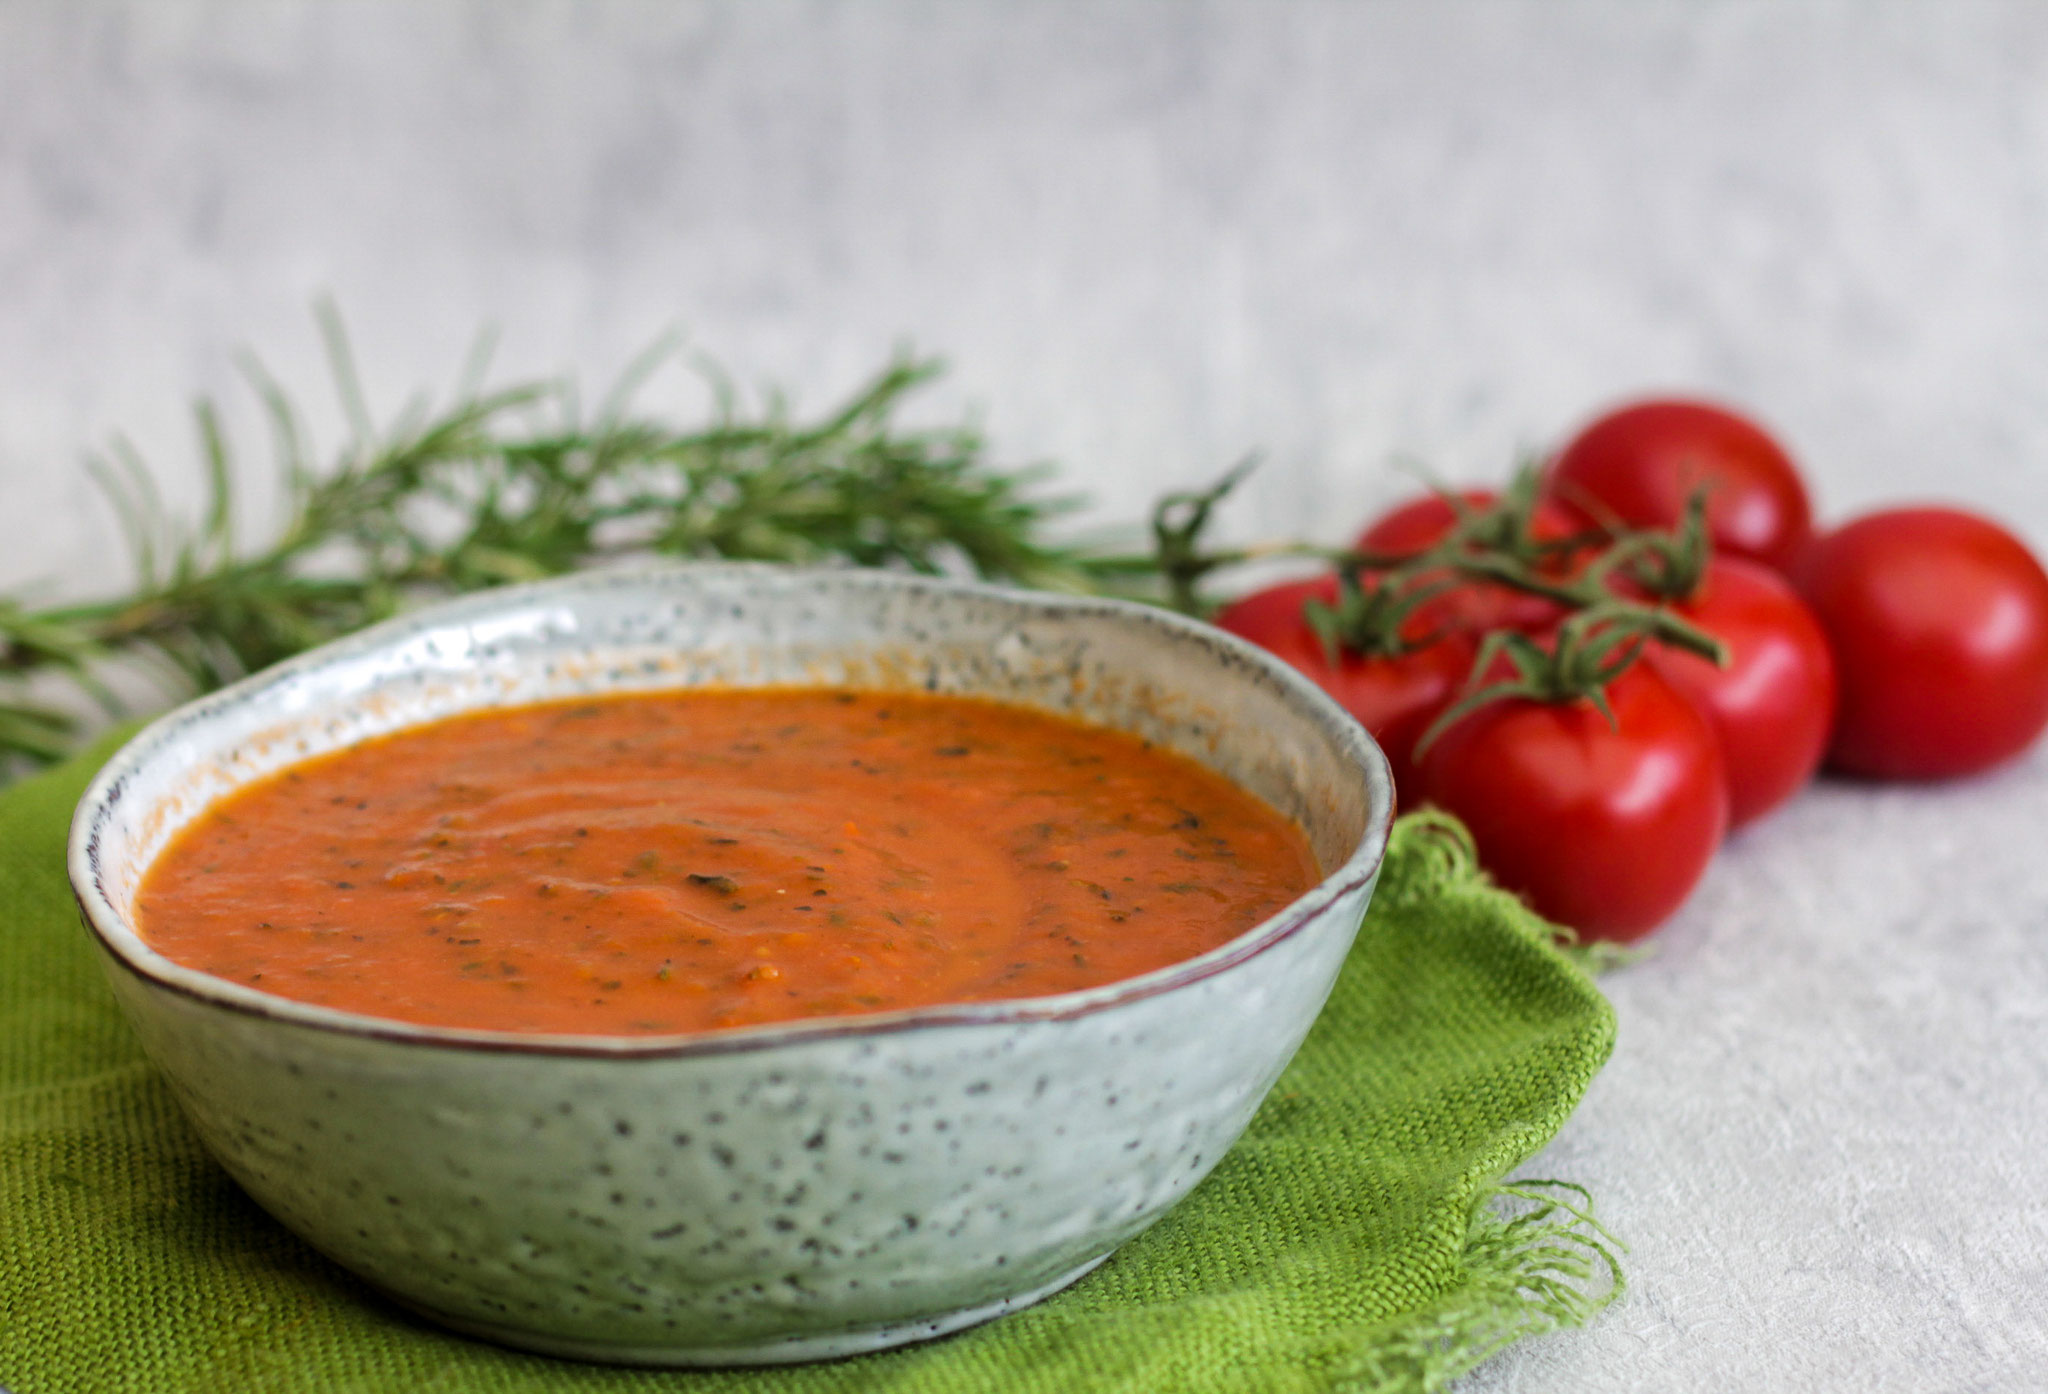 Ofengeröstete Tomatensuppe